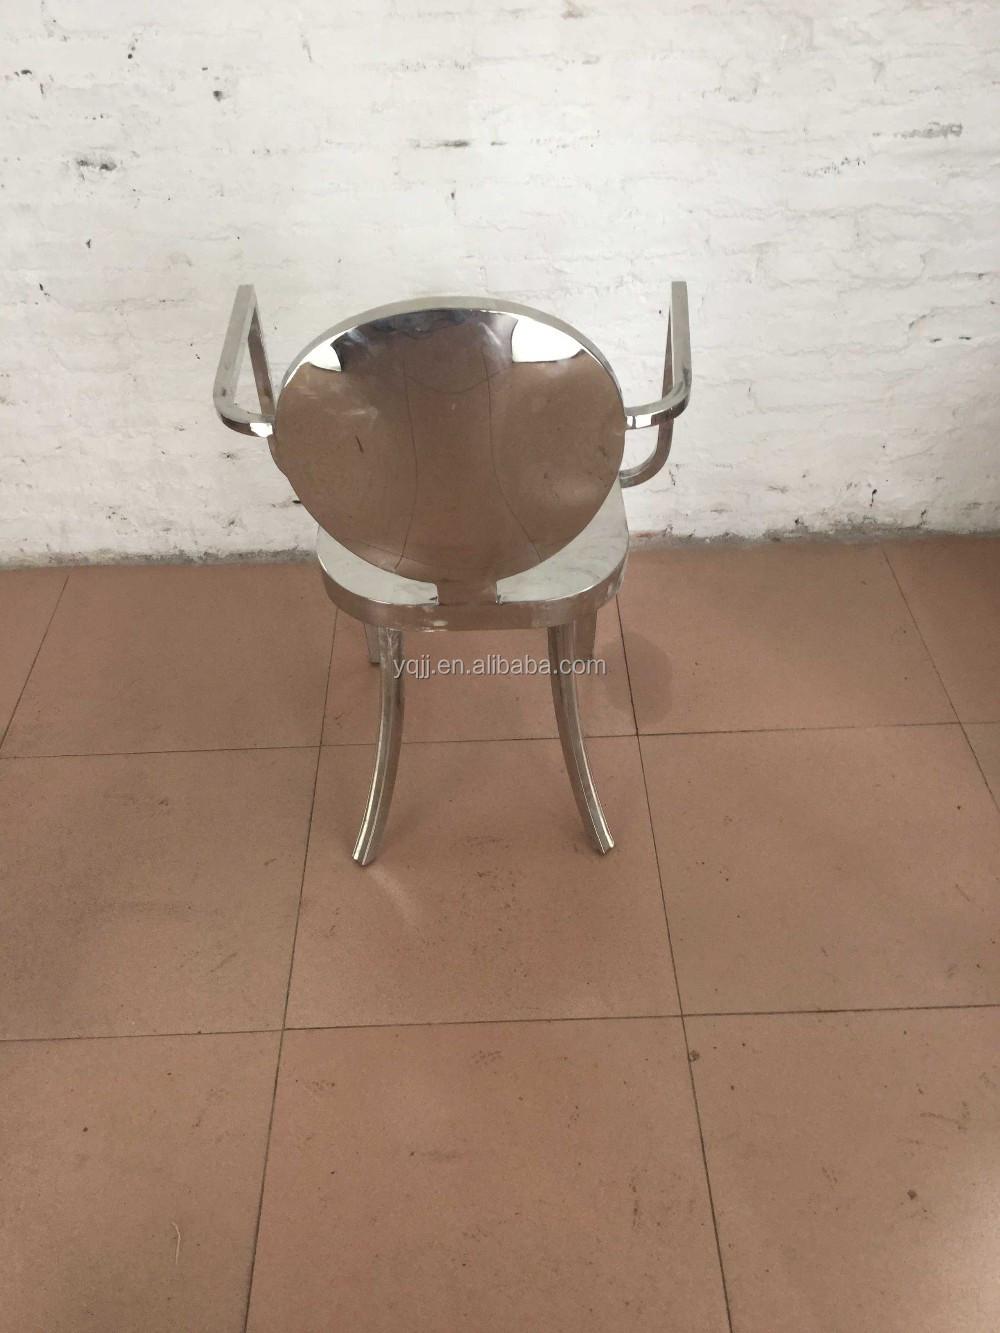 Stainless steel banquet luxury wedding chair for sale